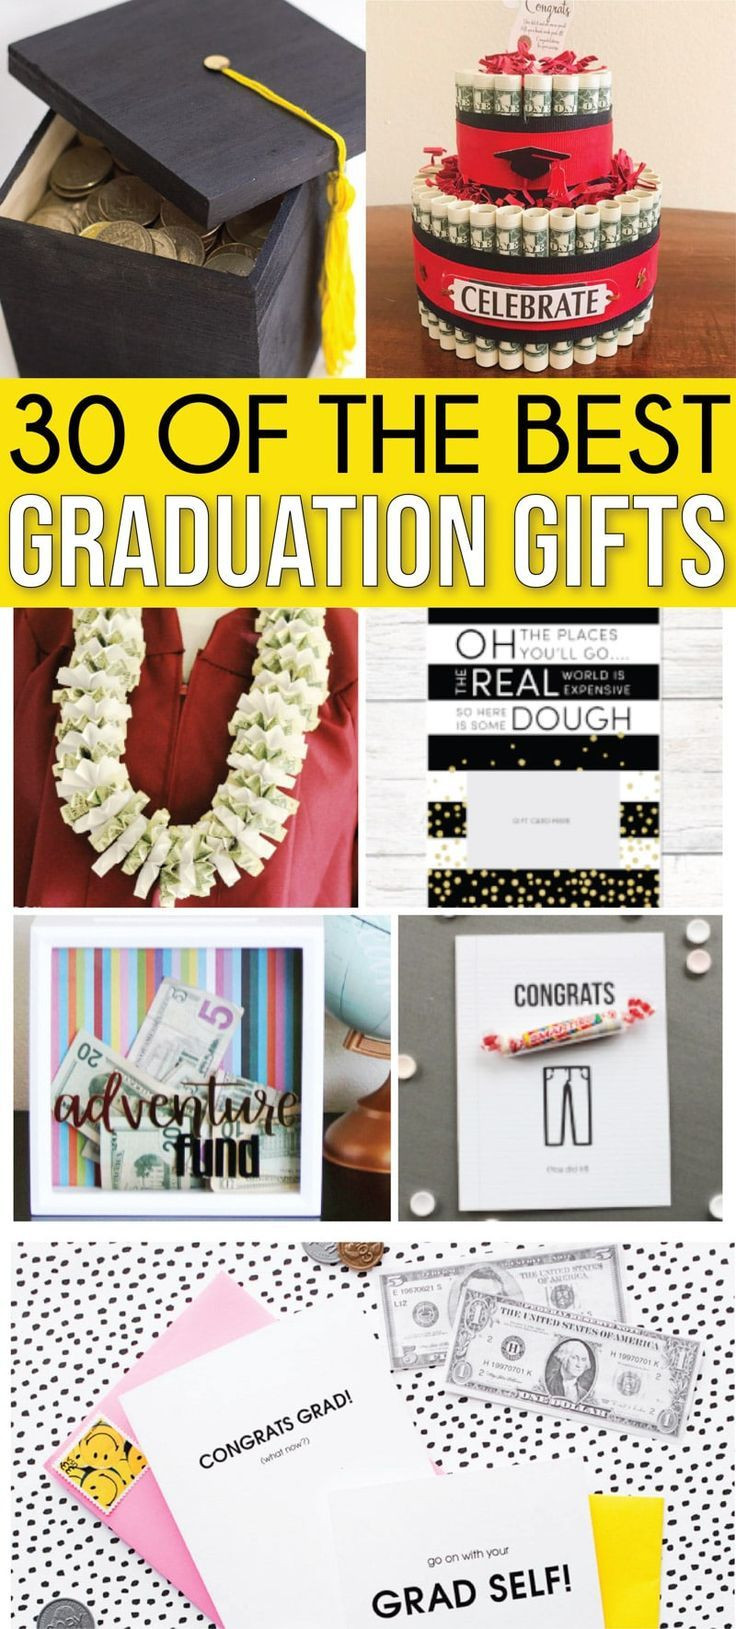 Top Graduation Gift Ideas For Senior Graduates  30 Graduation Gifts Graduates Actually Want